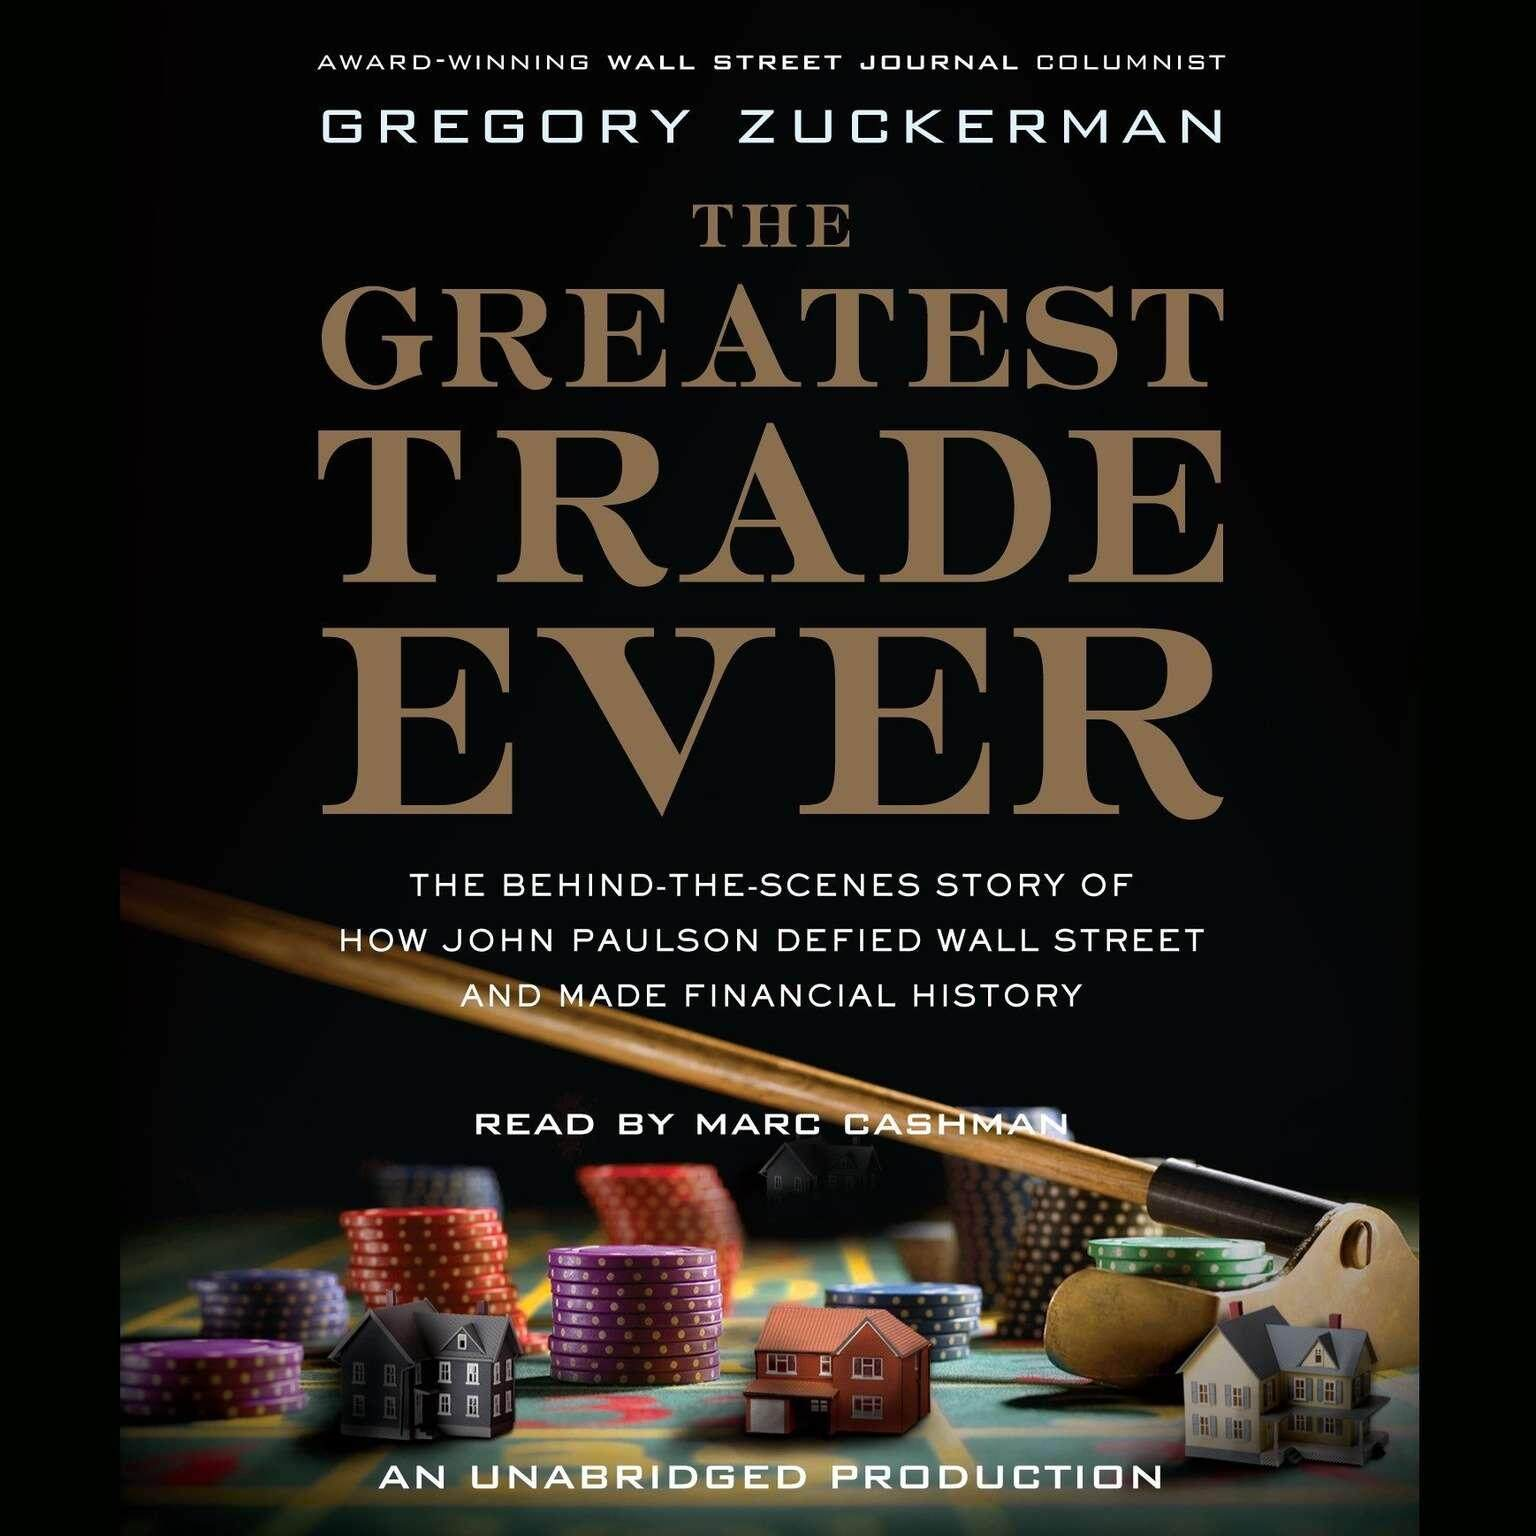 The Greatest Trade Ever by Gregory Zuckerman eBook